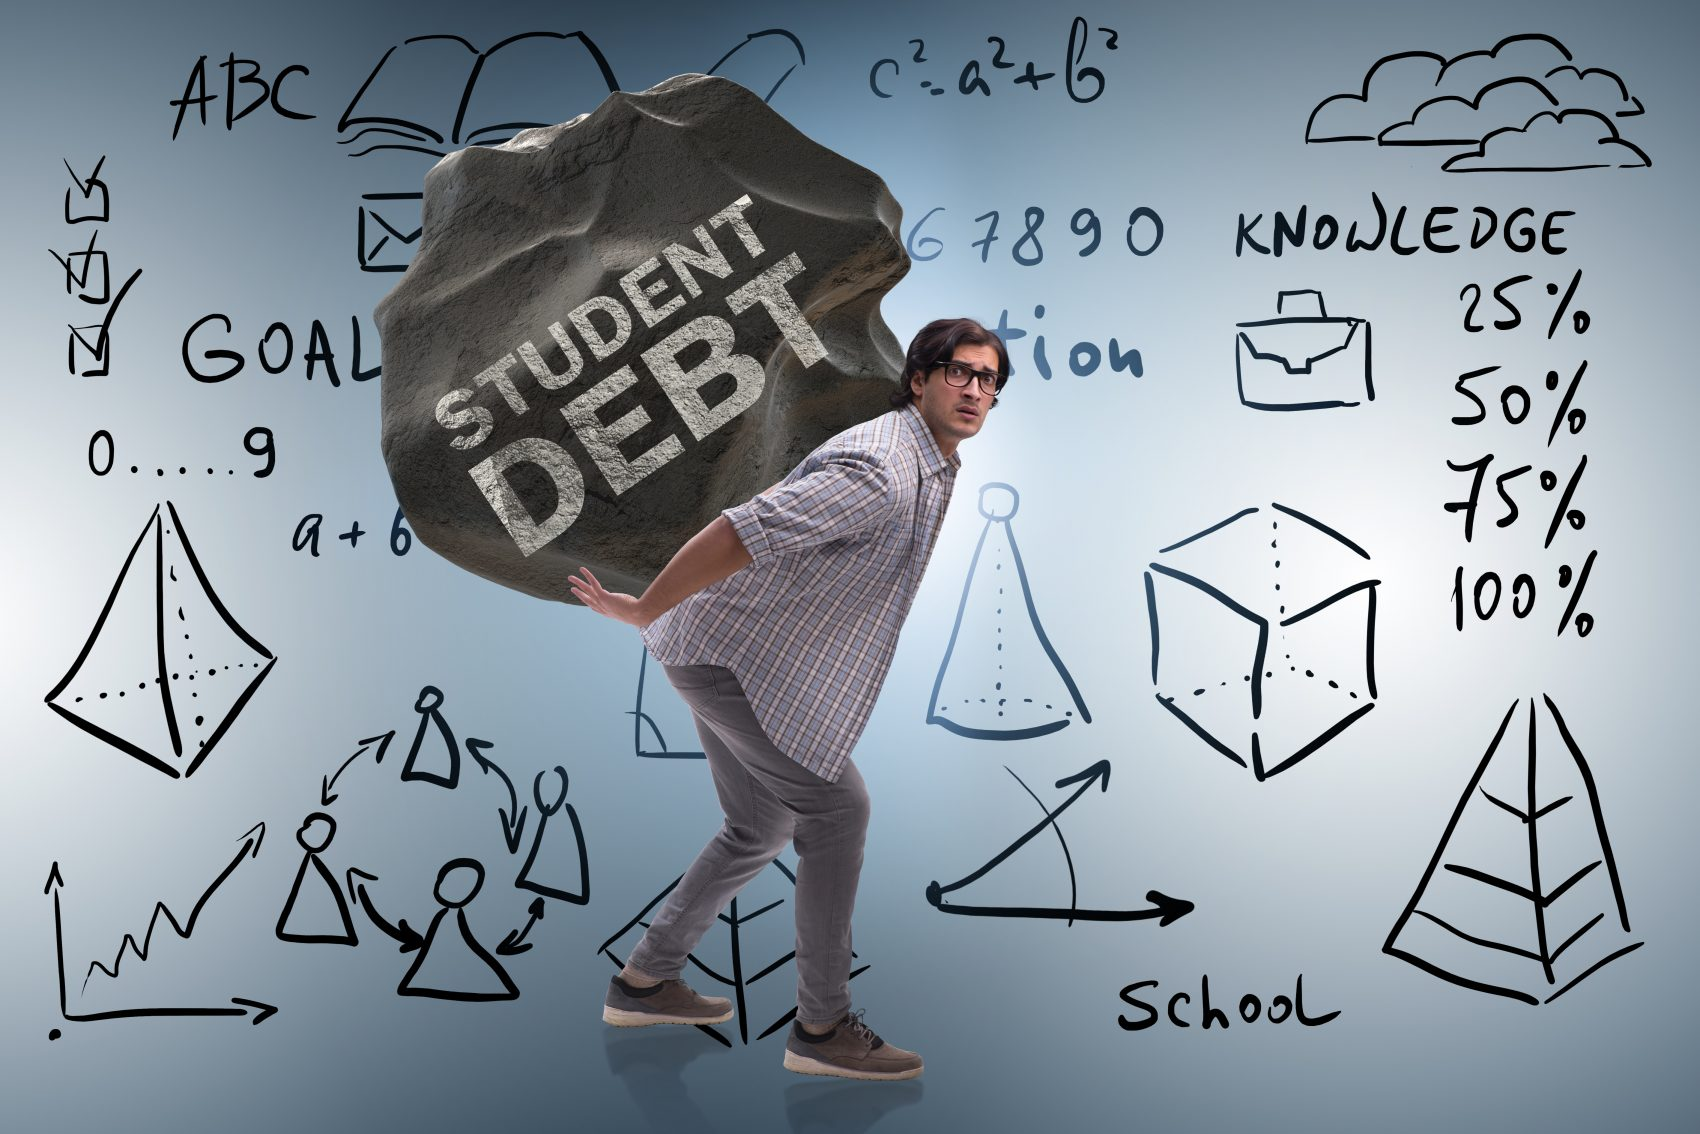 Will Filing For Bankruptcy Forgive My Student Loan Debt Too?